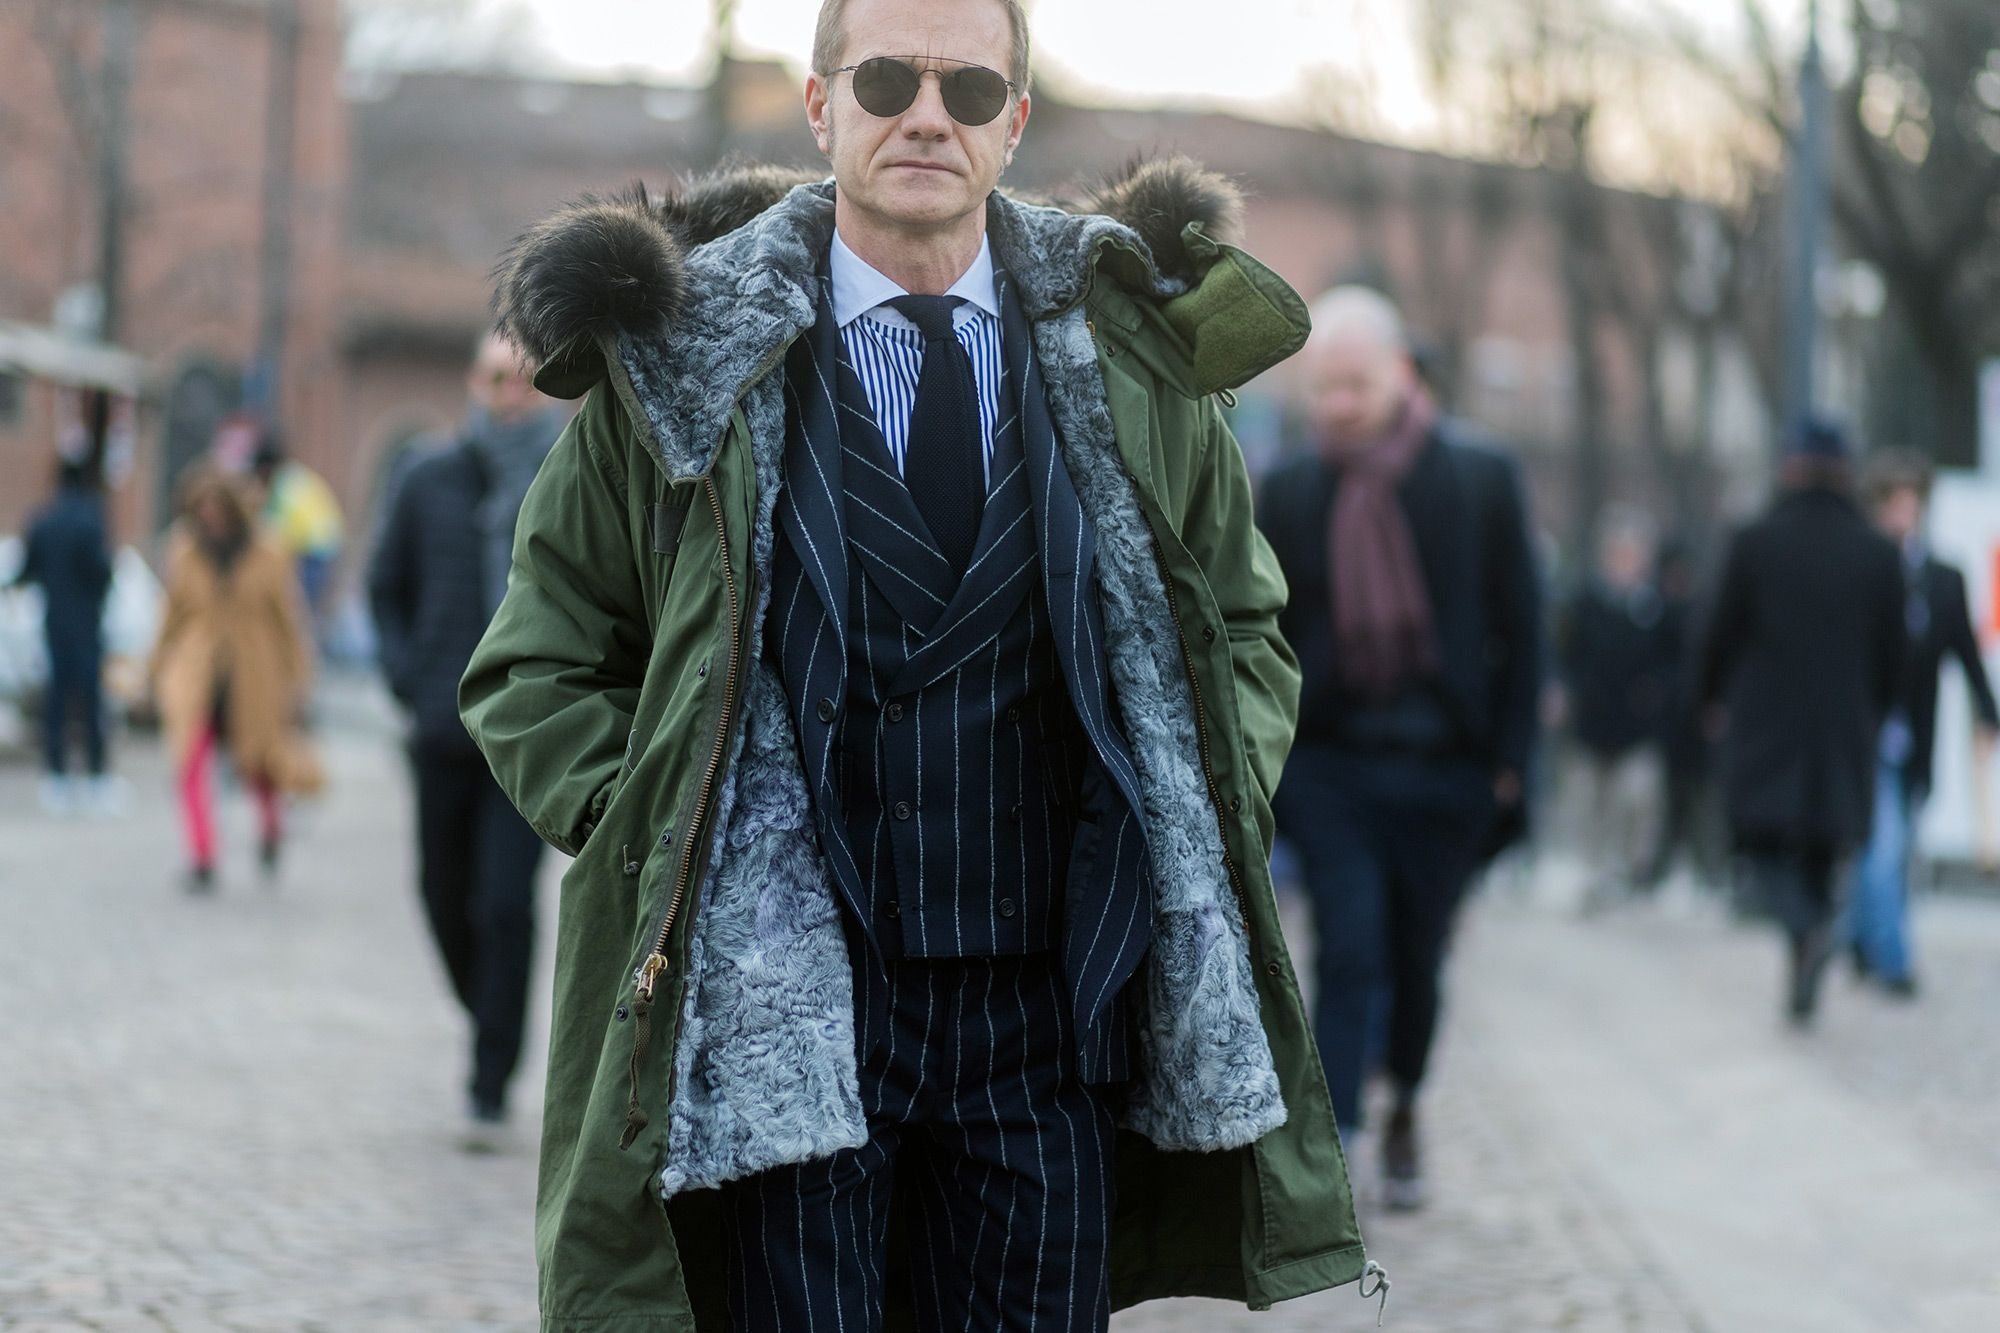 The Best Street Style from Day 1 of Pitti Uomo